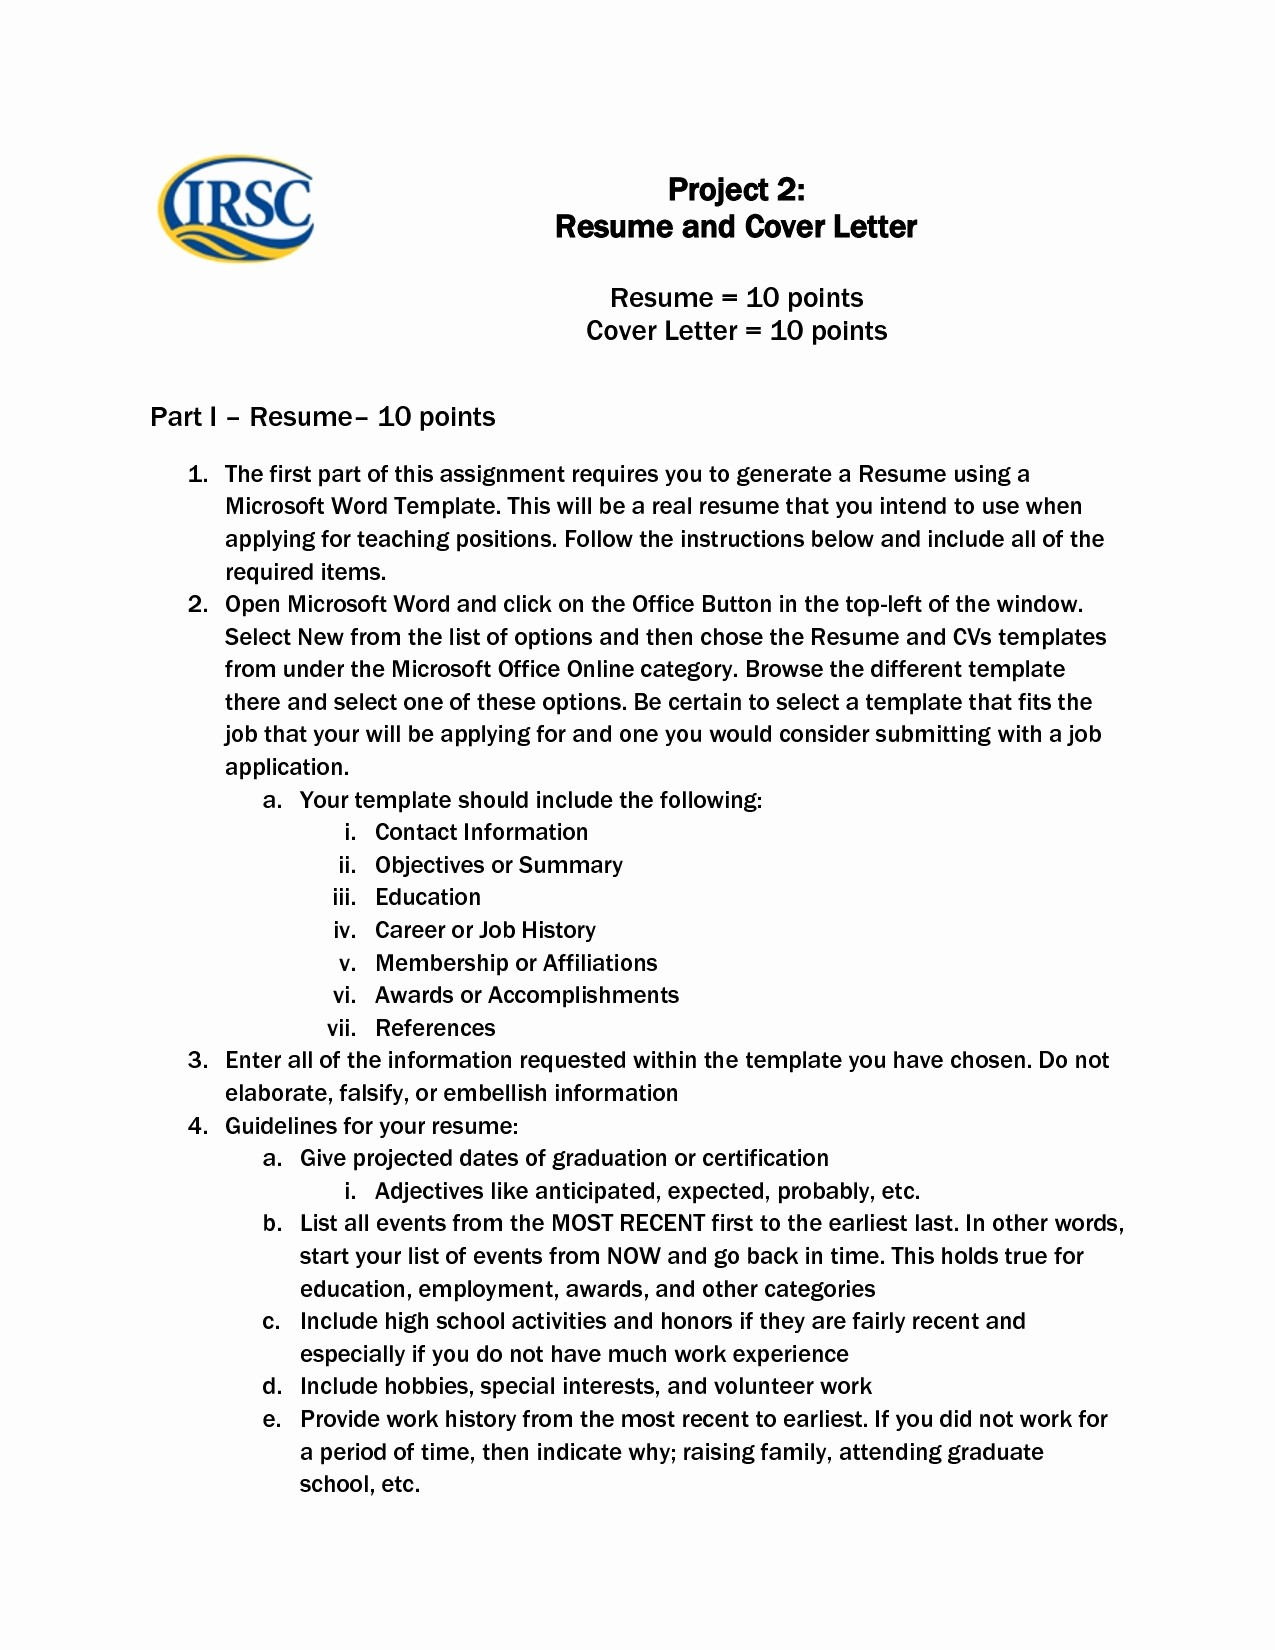 Resume Cover Letter Word Template New Resume Cover Letter Template 2017